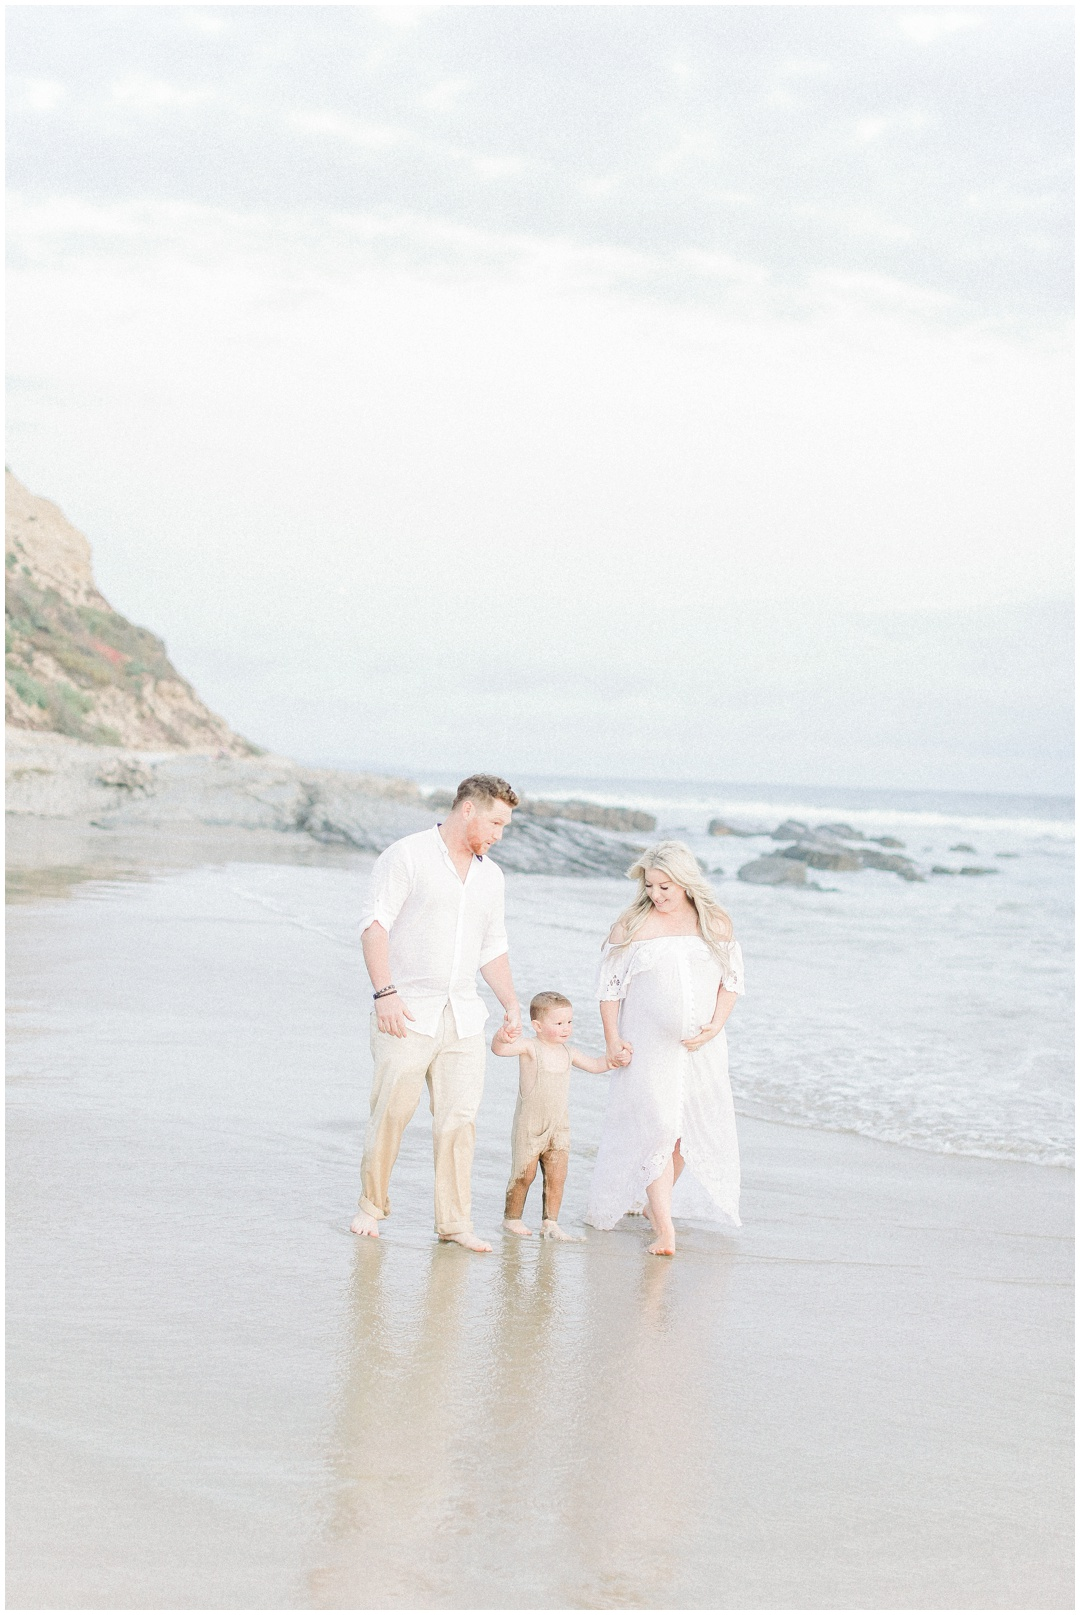 Newport_Beach_Newborn_Light_Airy_Natural_Photographer_Newport_Beach_Photographer_Orange_County_Family_Photographer_Cori_Kleckner_Photography_Newport_Beach_Photographer_Maternity_kole_calhoun56_kole_calhoun_Jennifer_Calhoun_Knox_Calhoun_3697.jpg